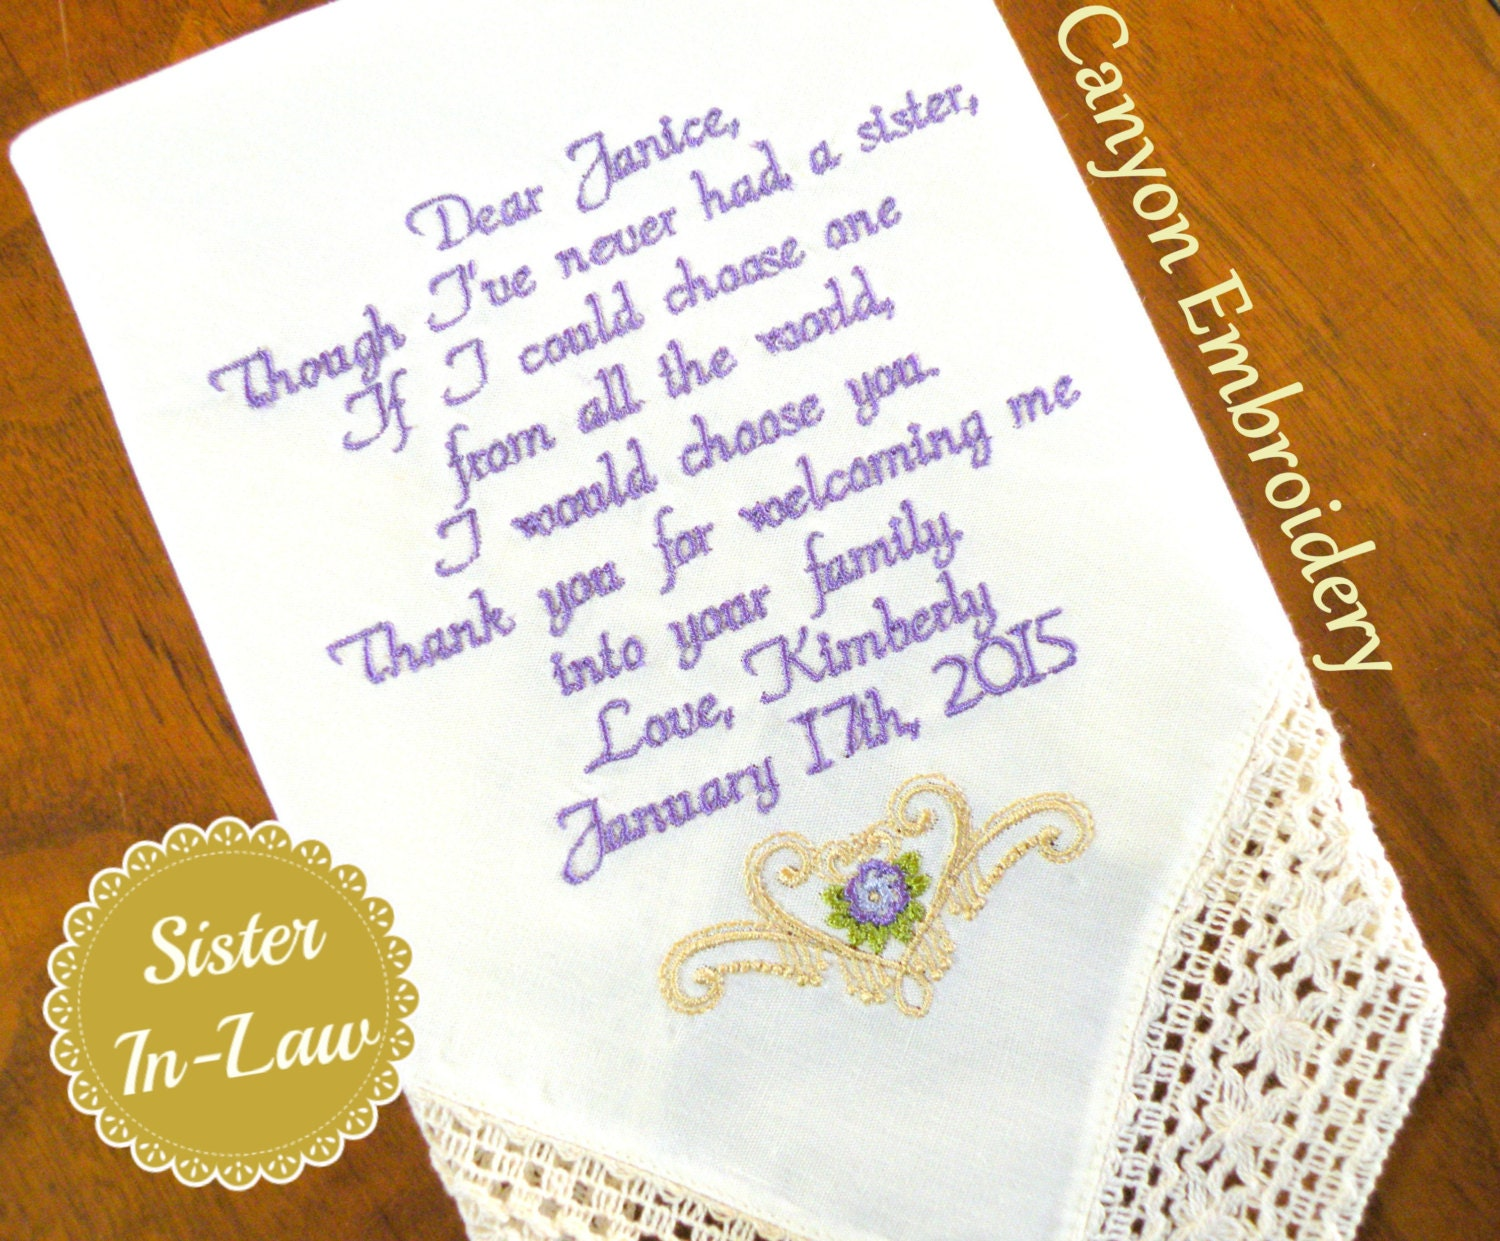 Sister Sister In Law Wedding Gift Embroidered Wedding